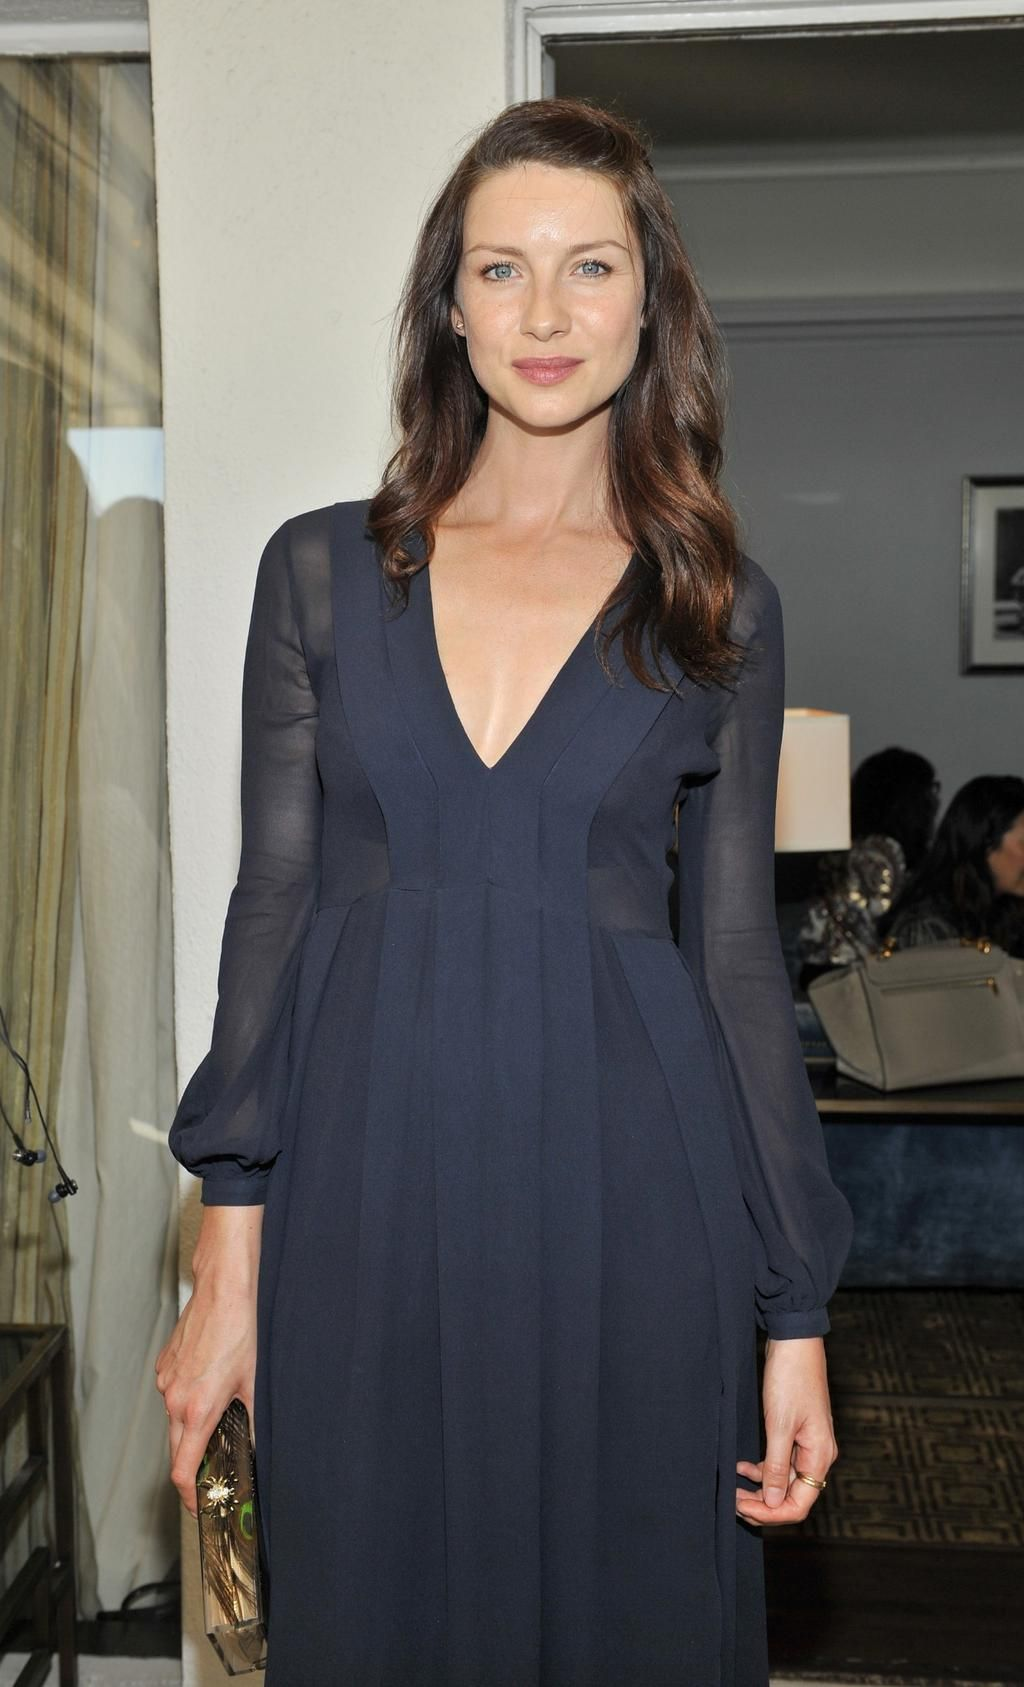 Our #wcw is Caitriona Balfe! @caitrionambalfe #Outlander